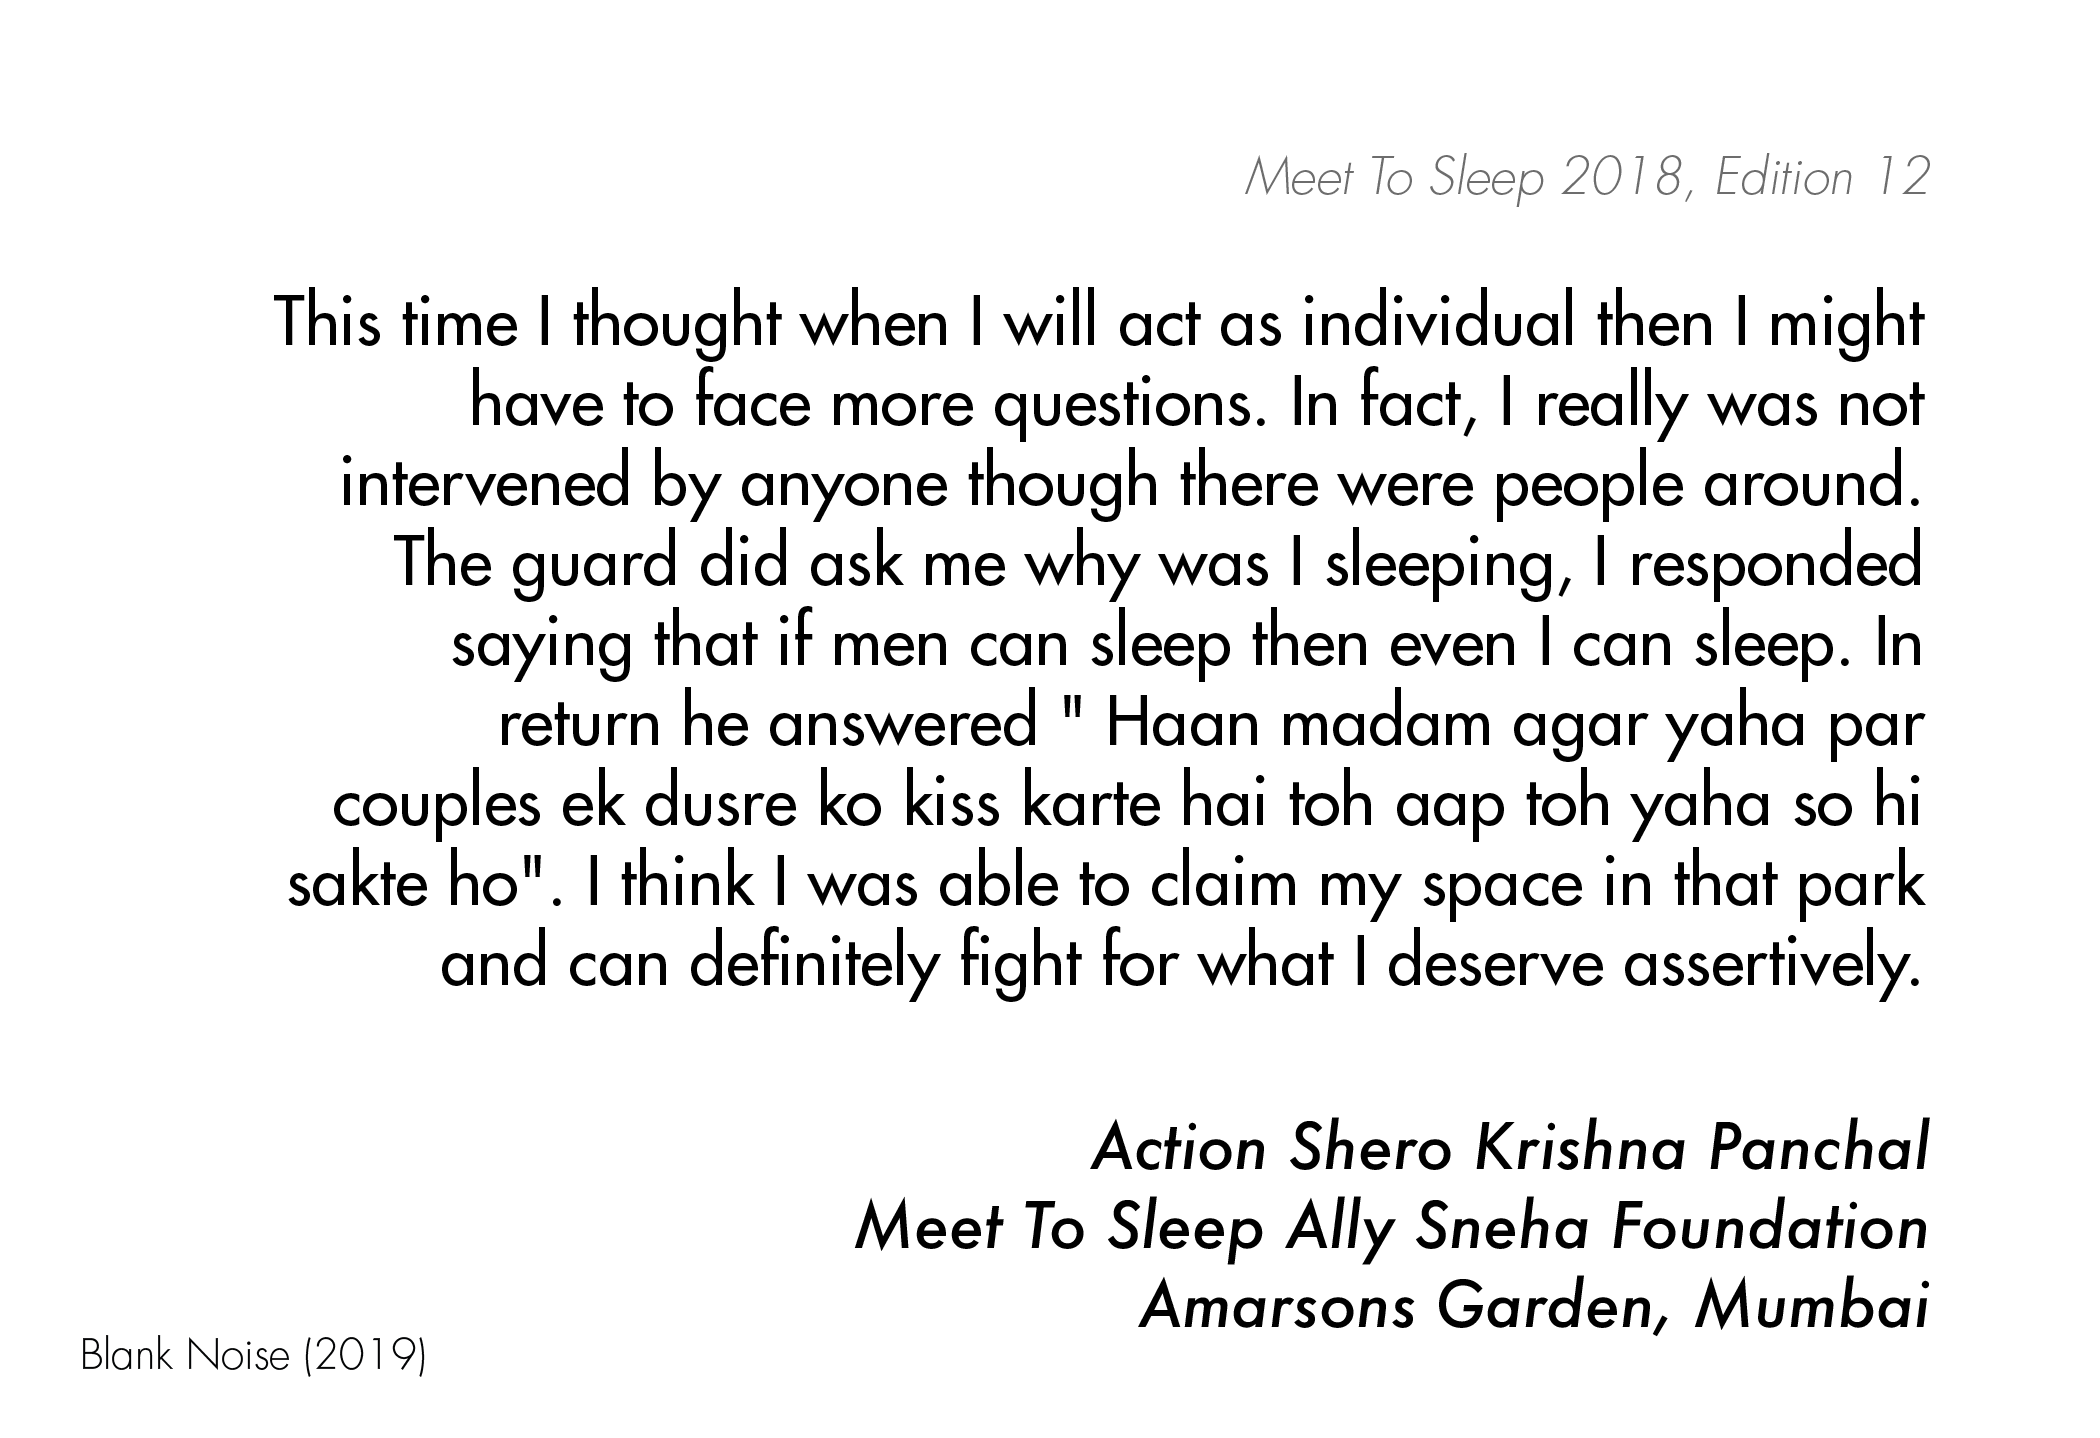 MTS 2018 Quotes -27.png